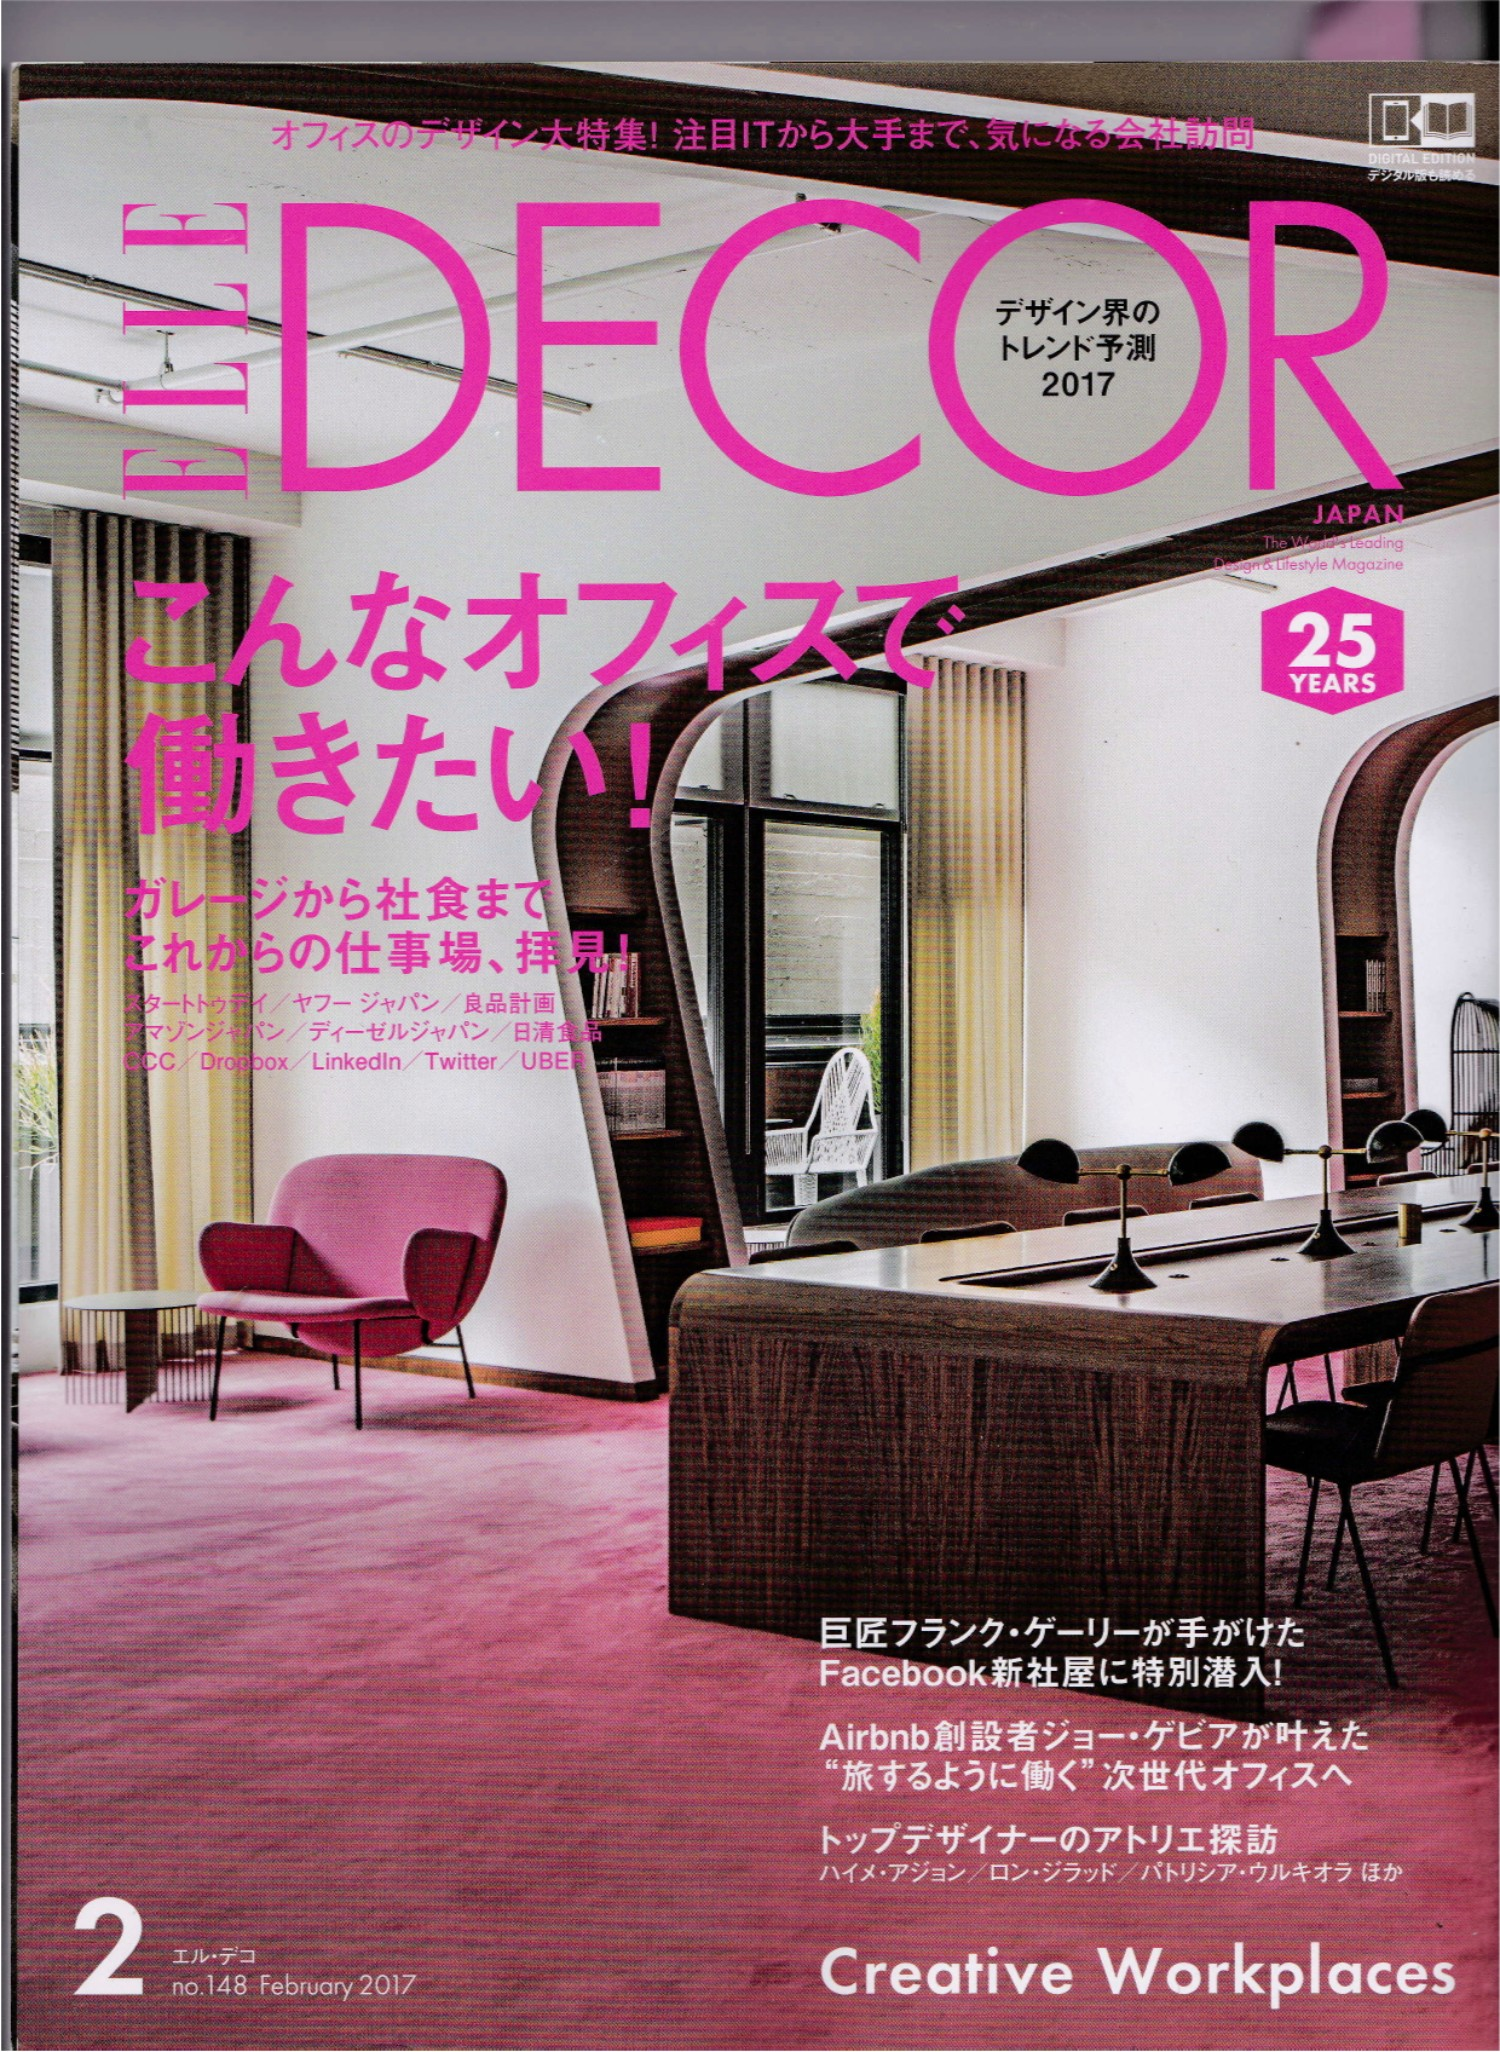 ELLE DECOR JAPAN, Feb 2017